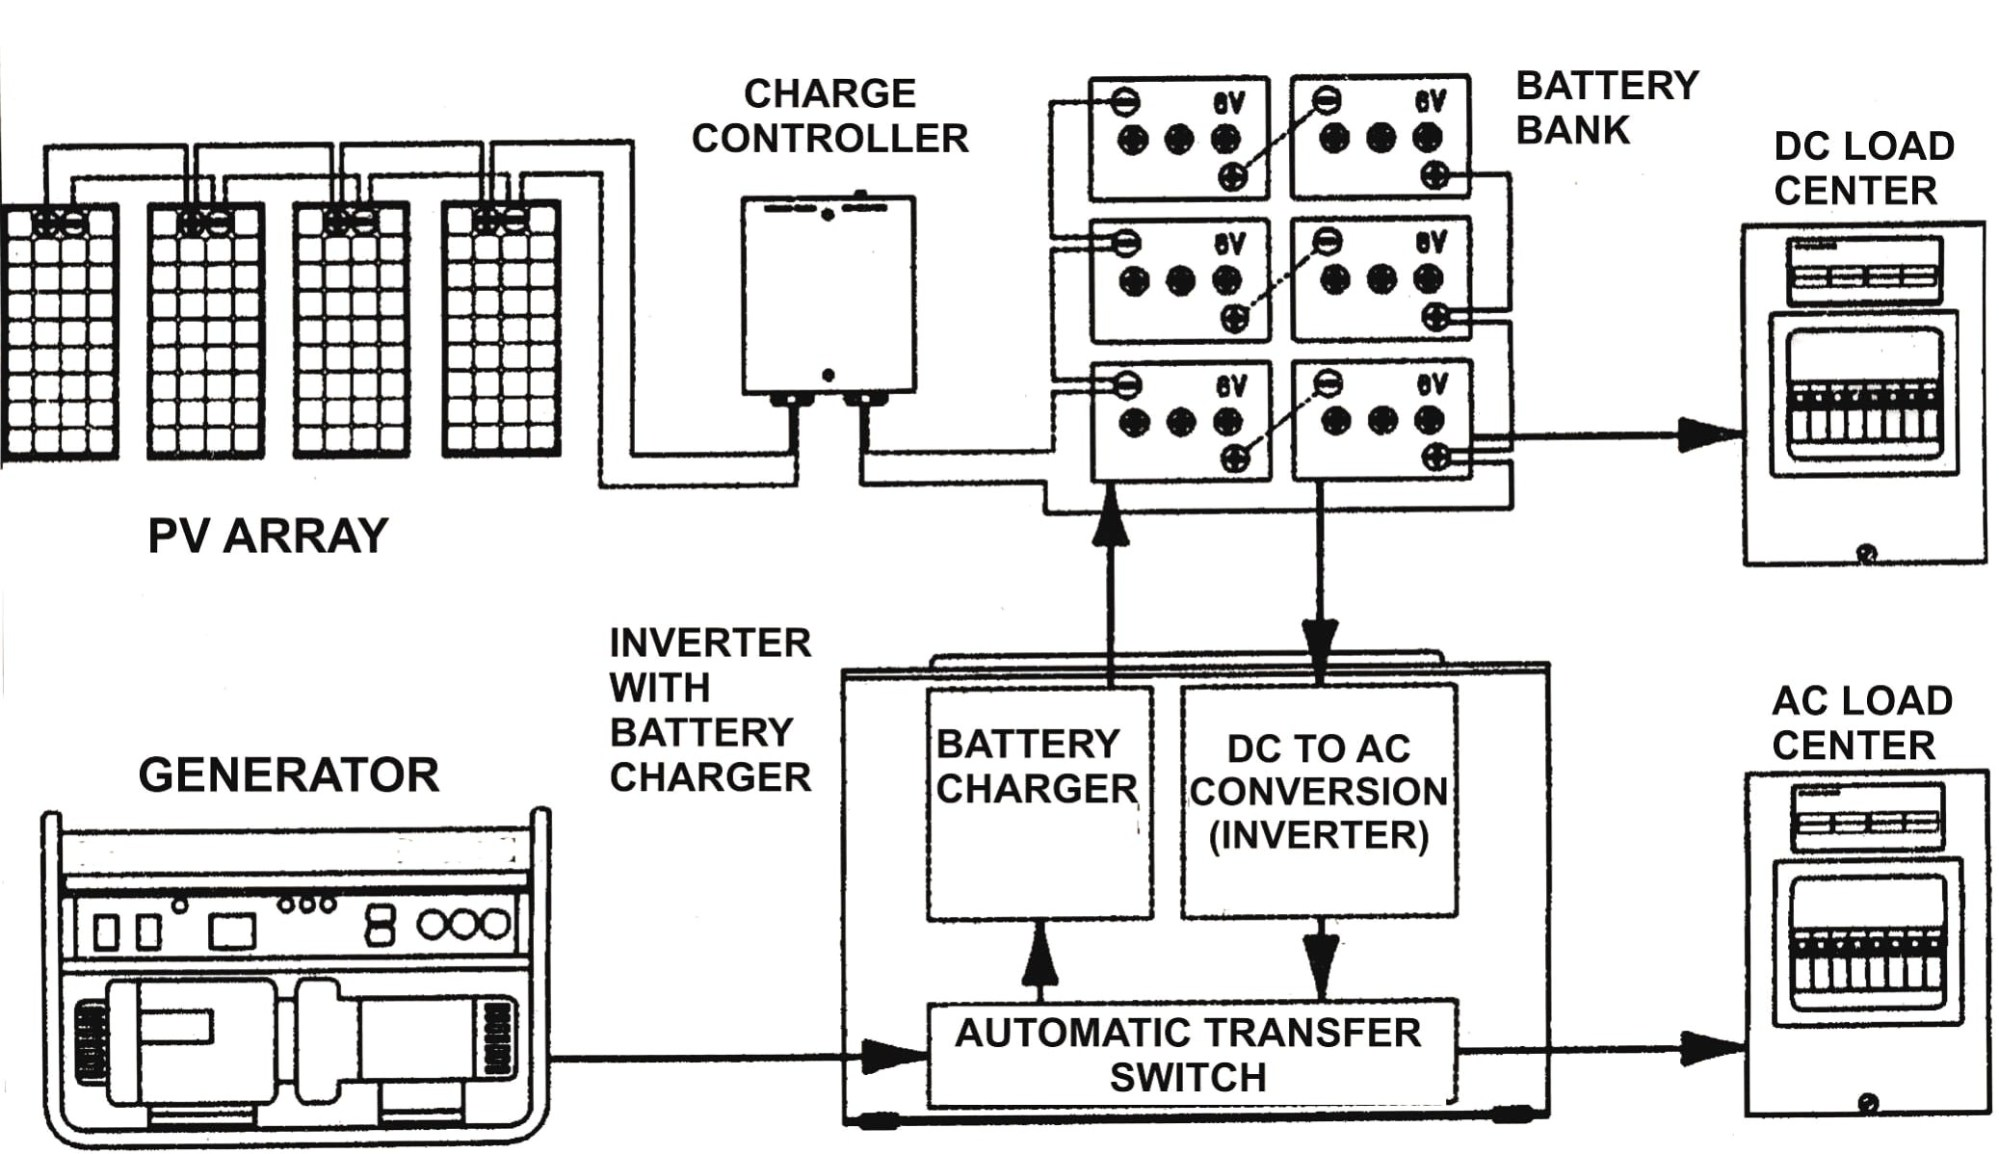 hight resolution of rv inverter charger wiring diagram download rv converter wiring diagram 19 q download